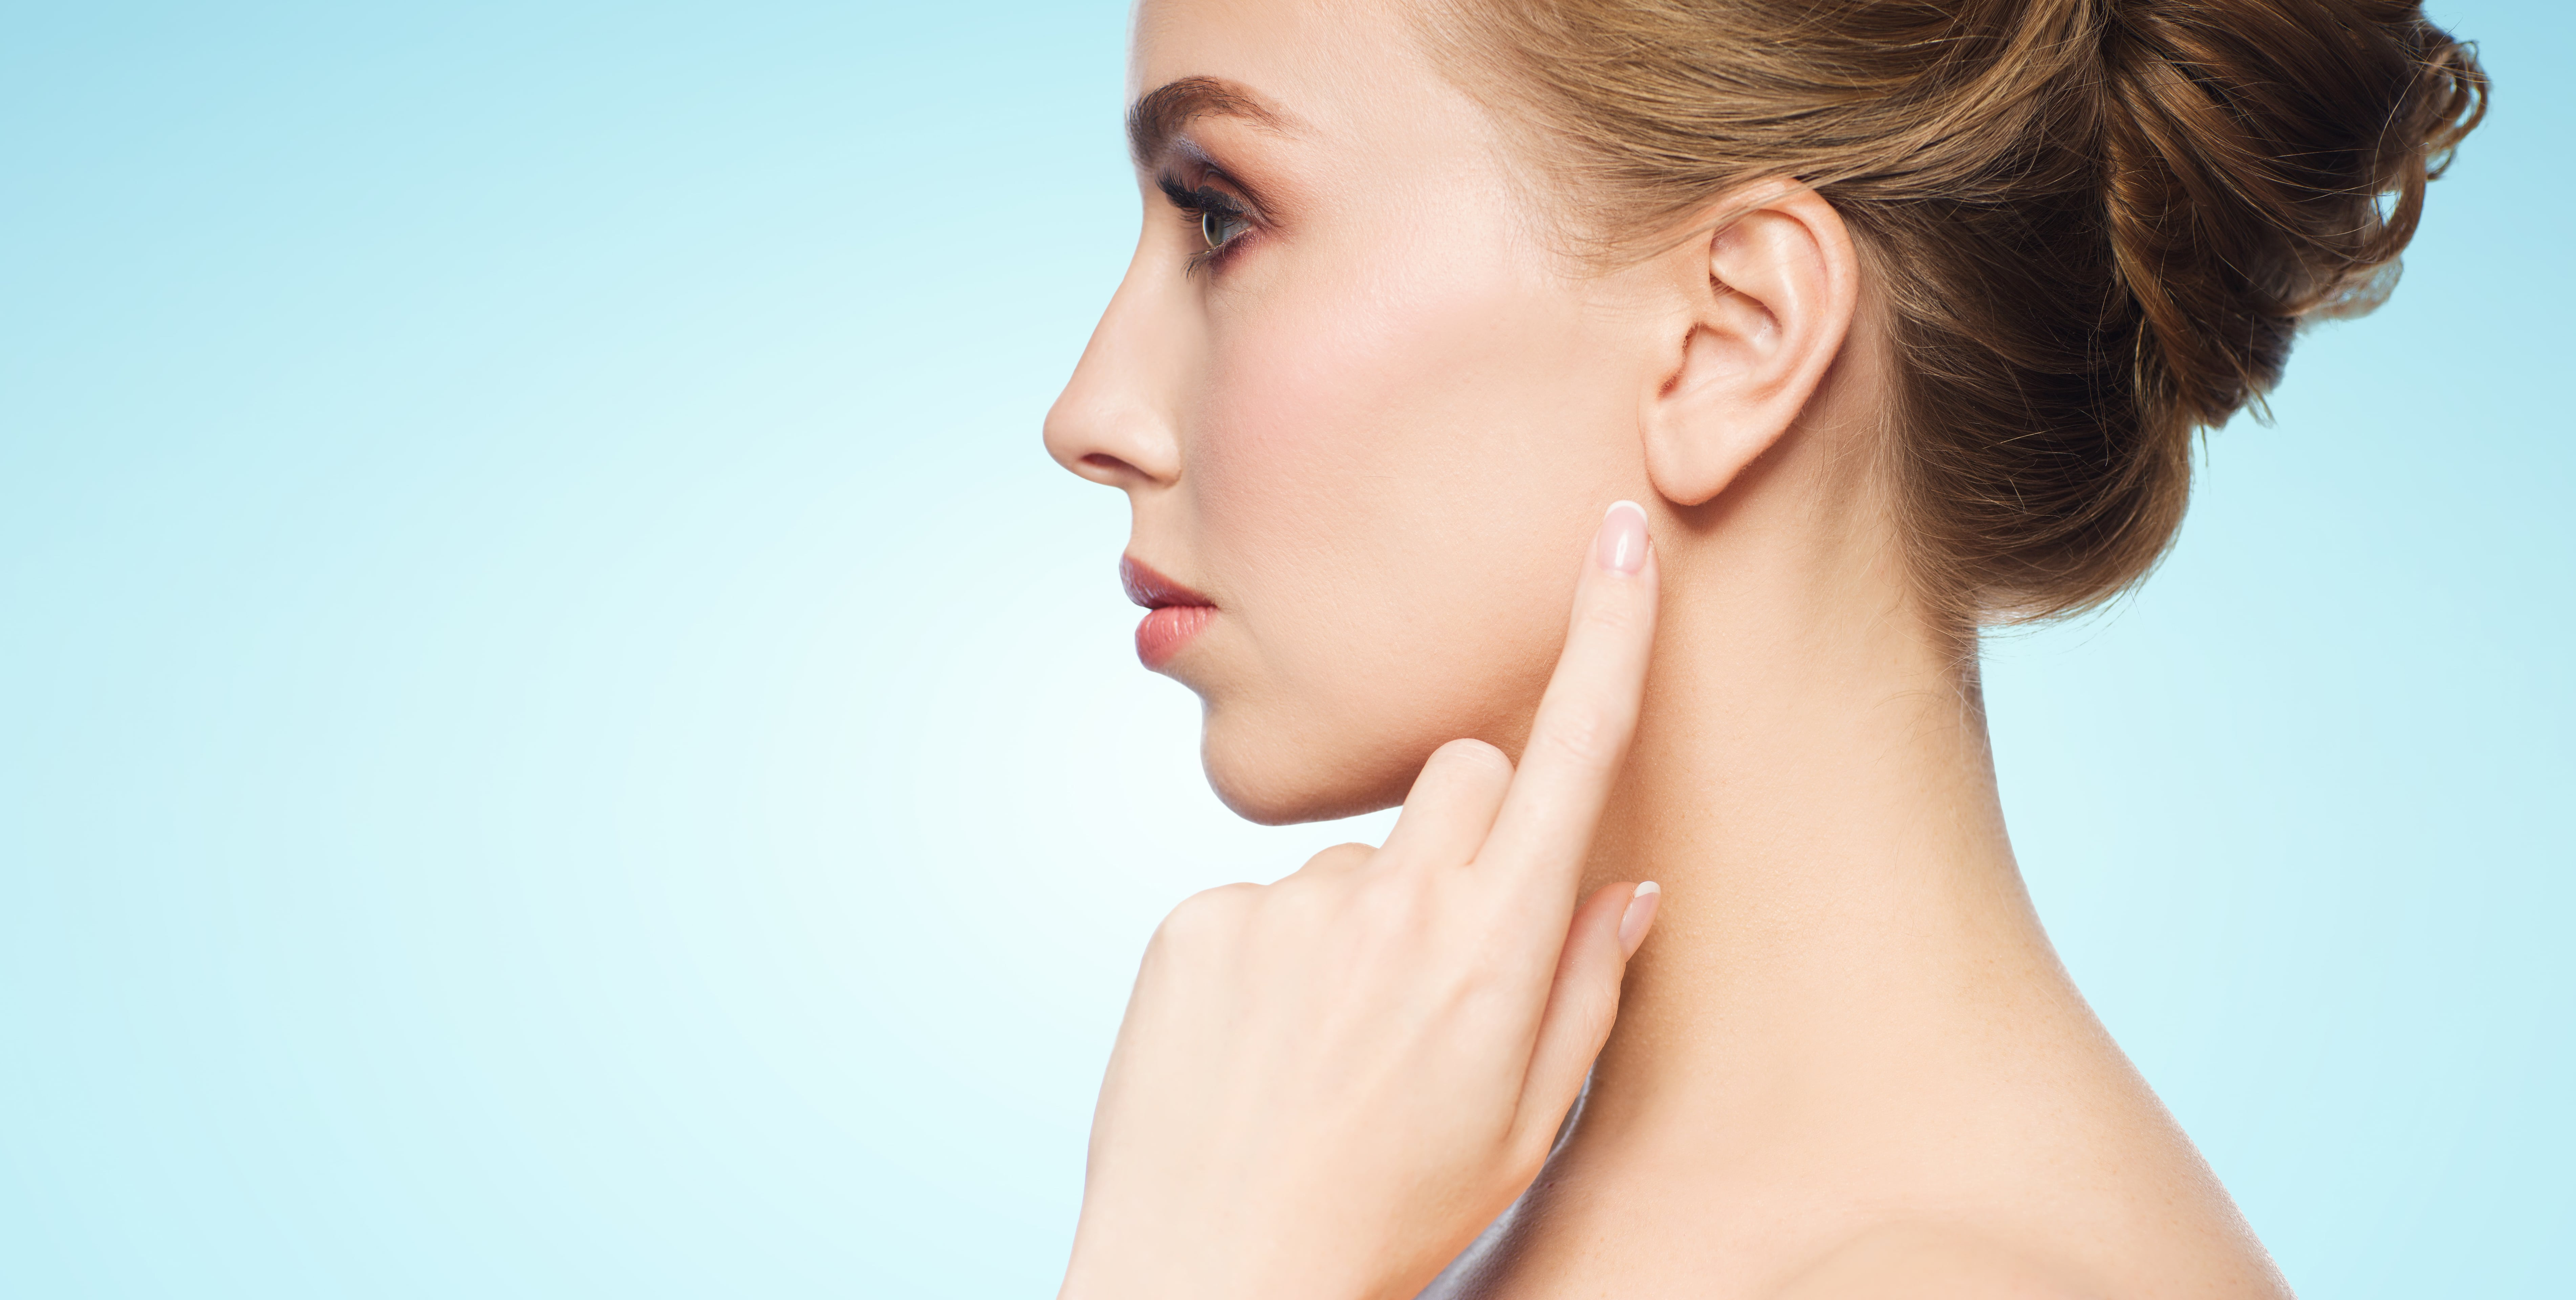 ear-surgery-min Facial Surgery In Scottsdale